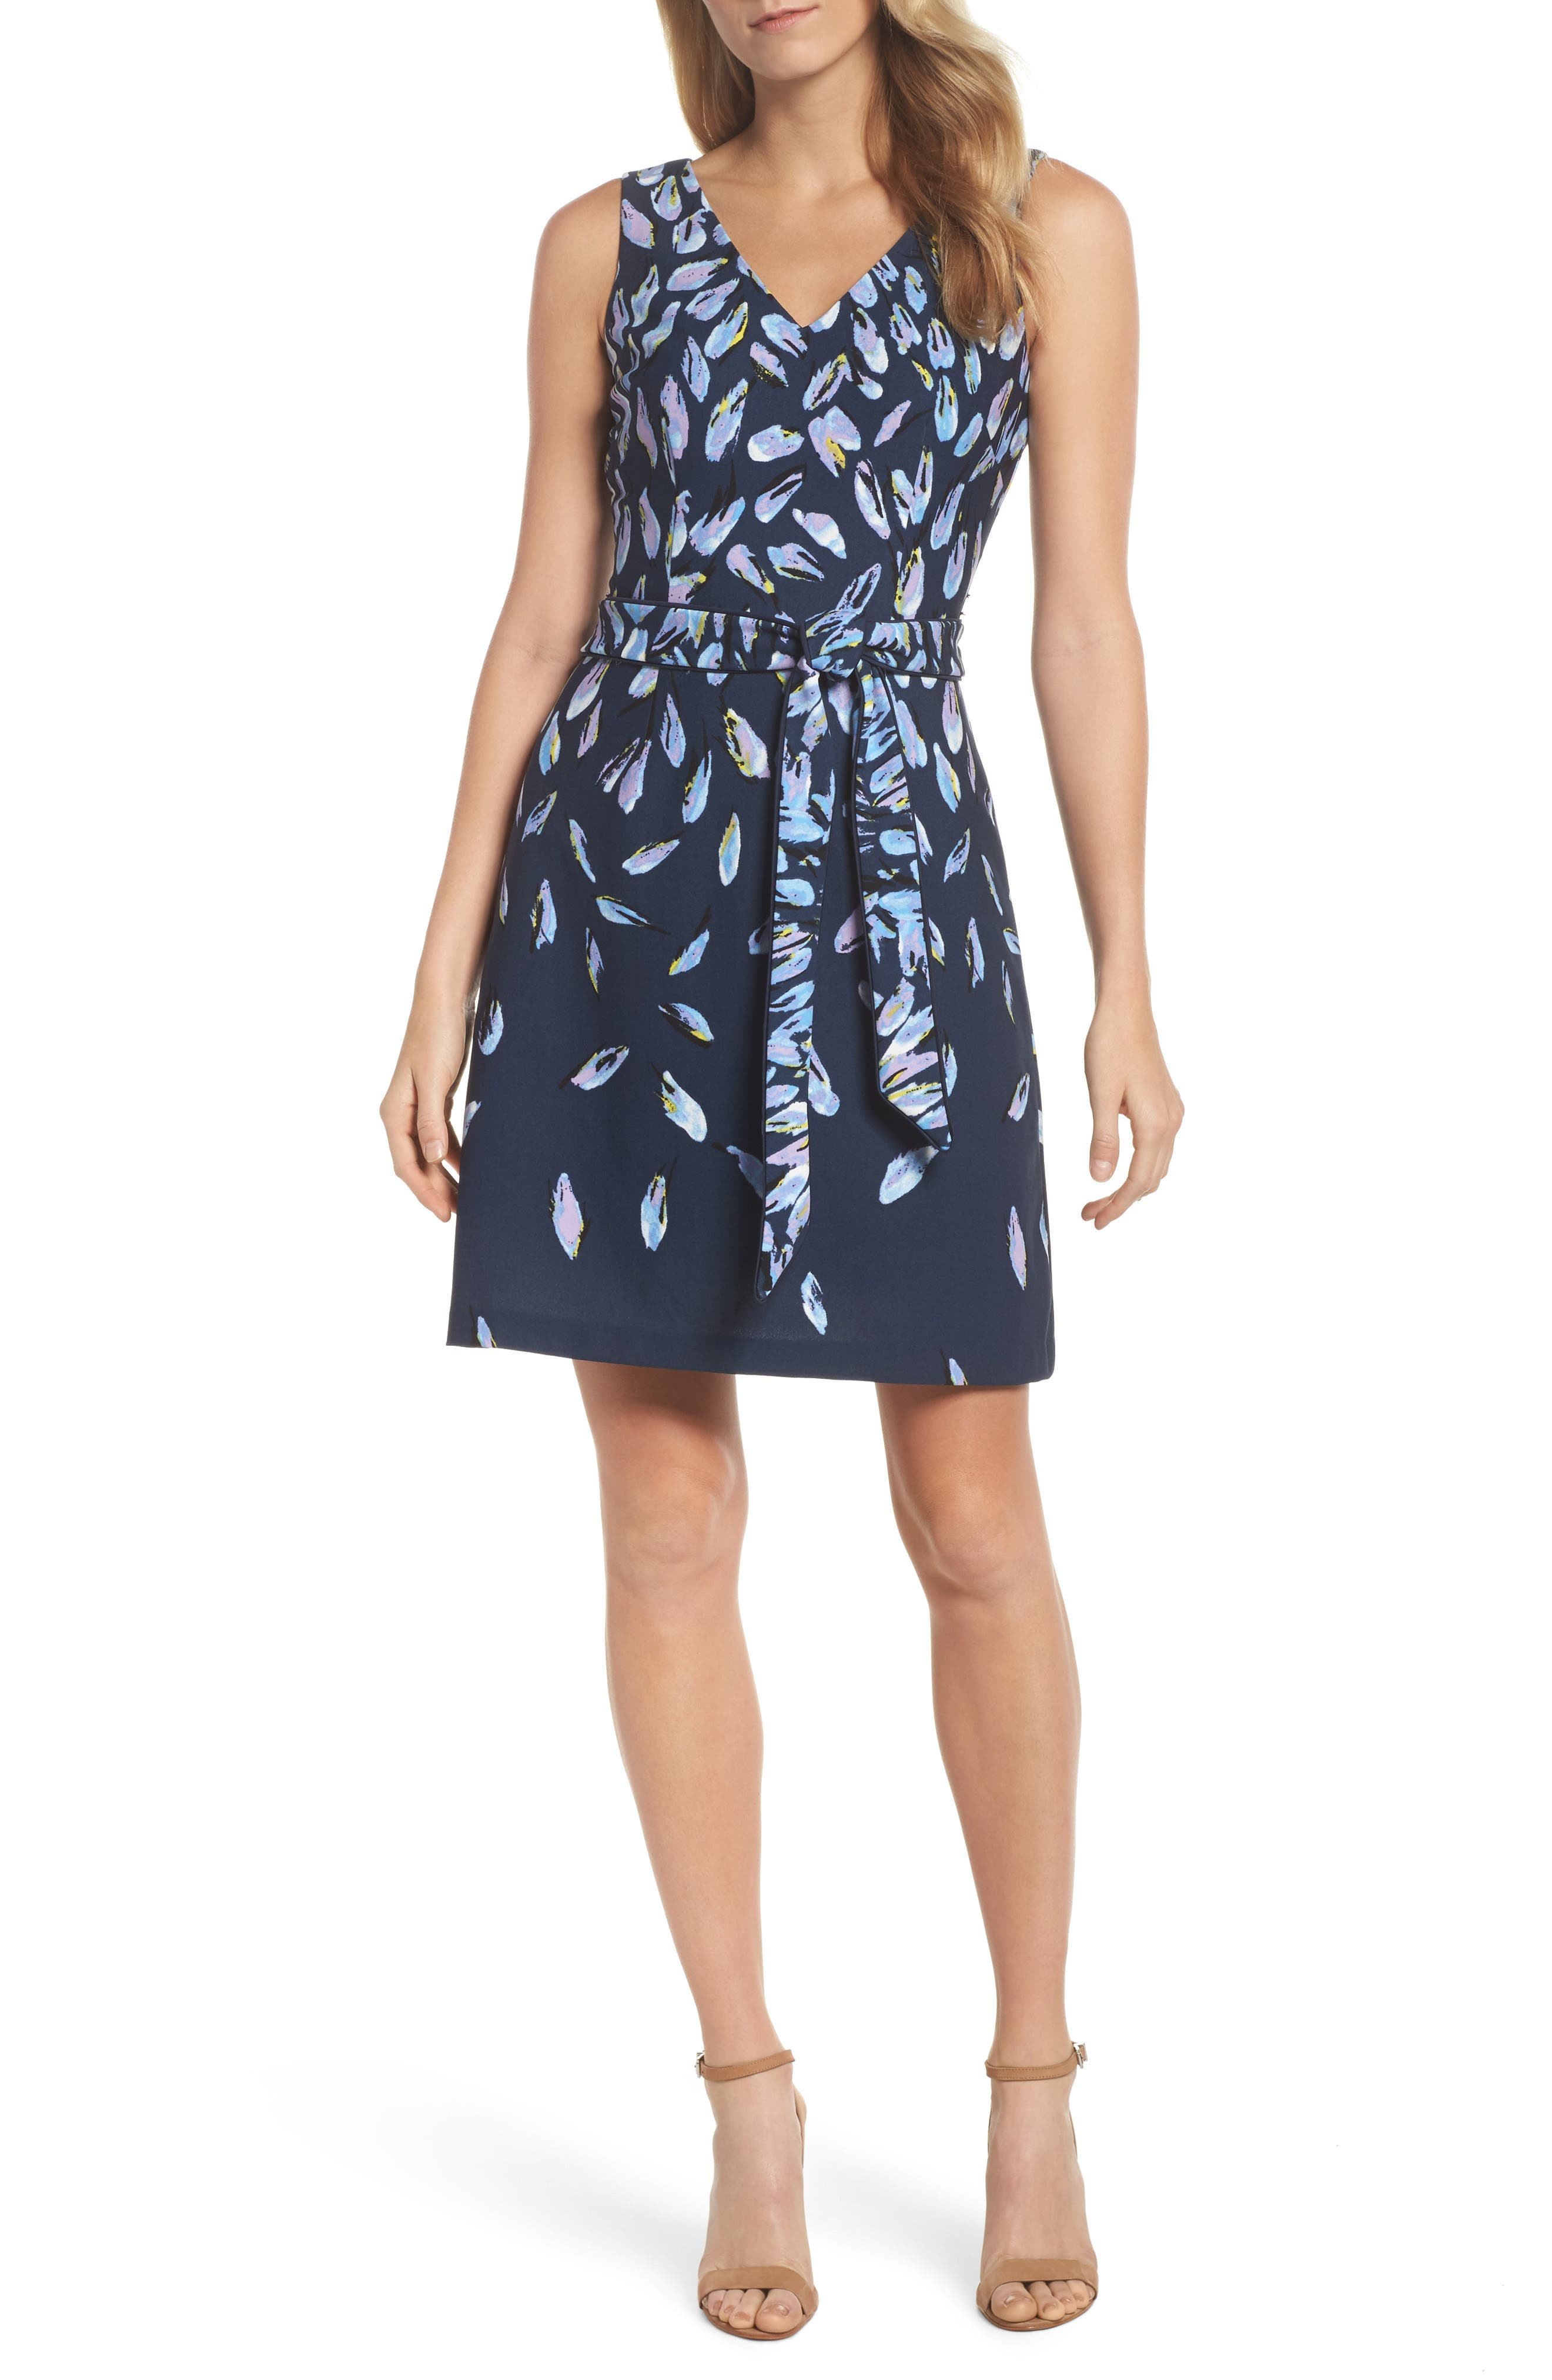 Main Image - Adrianna Papell Print Fit & Flare Dress